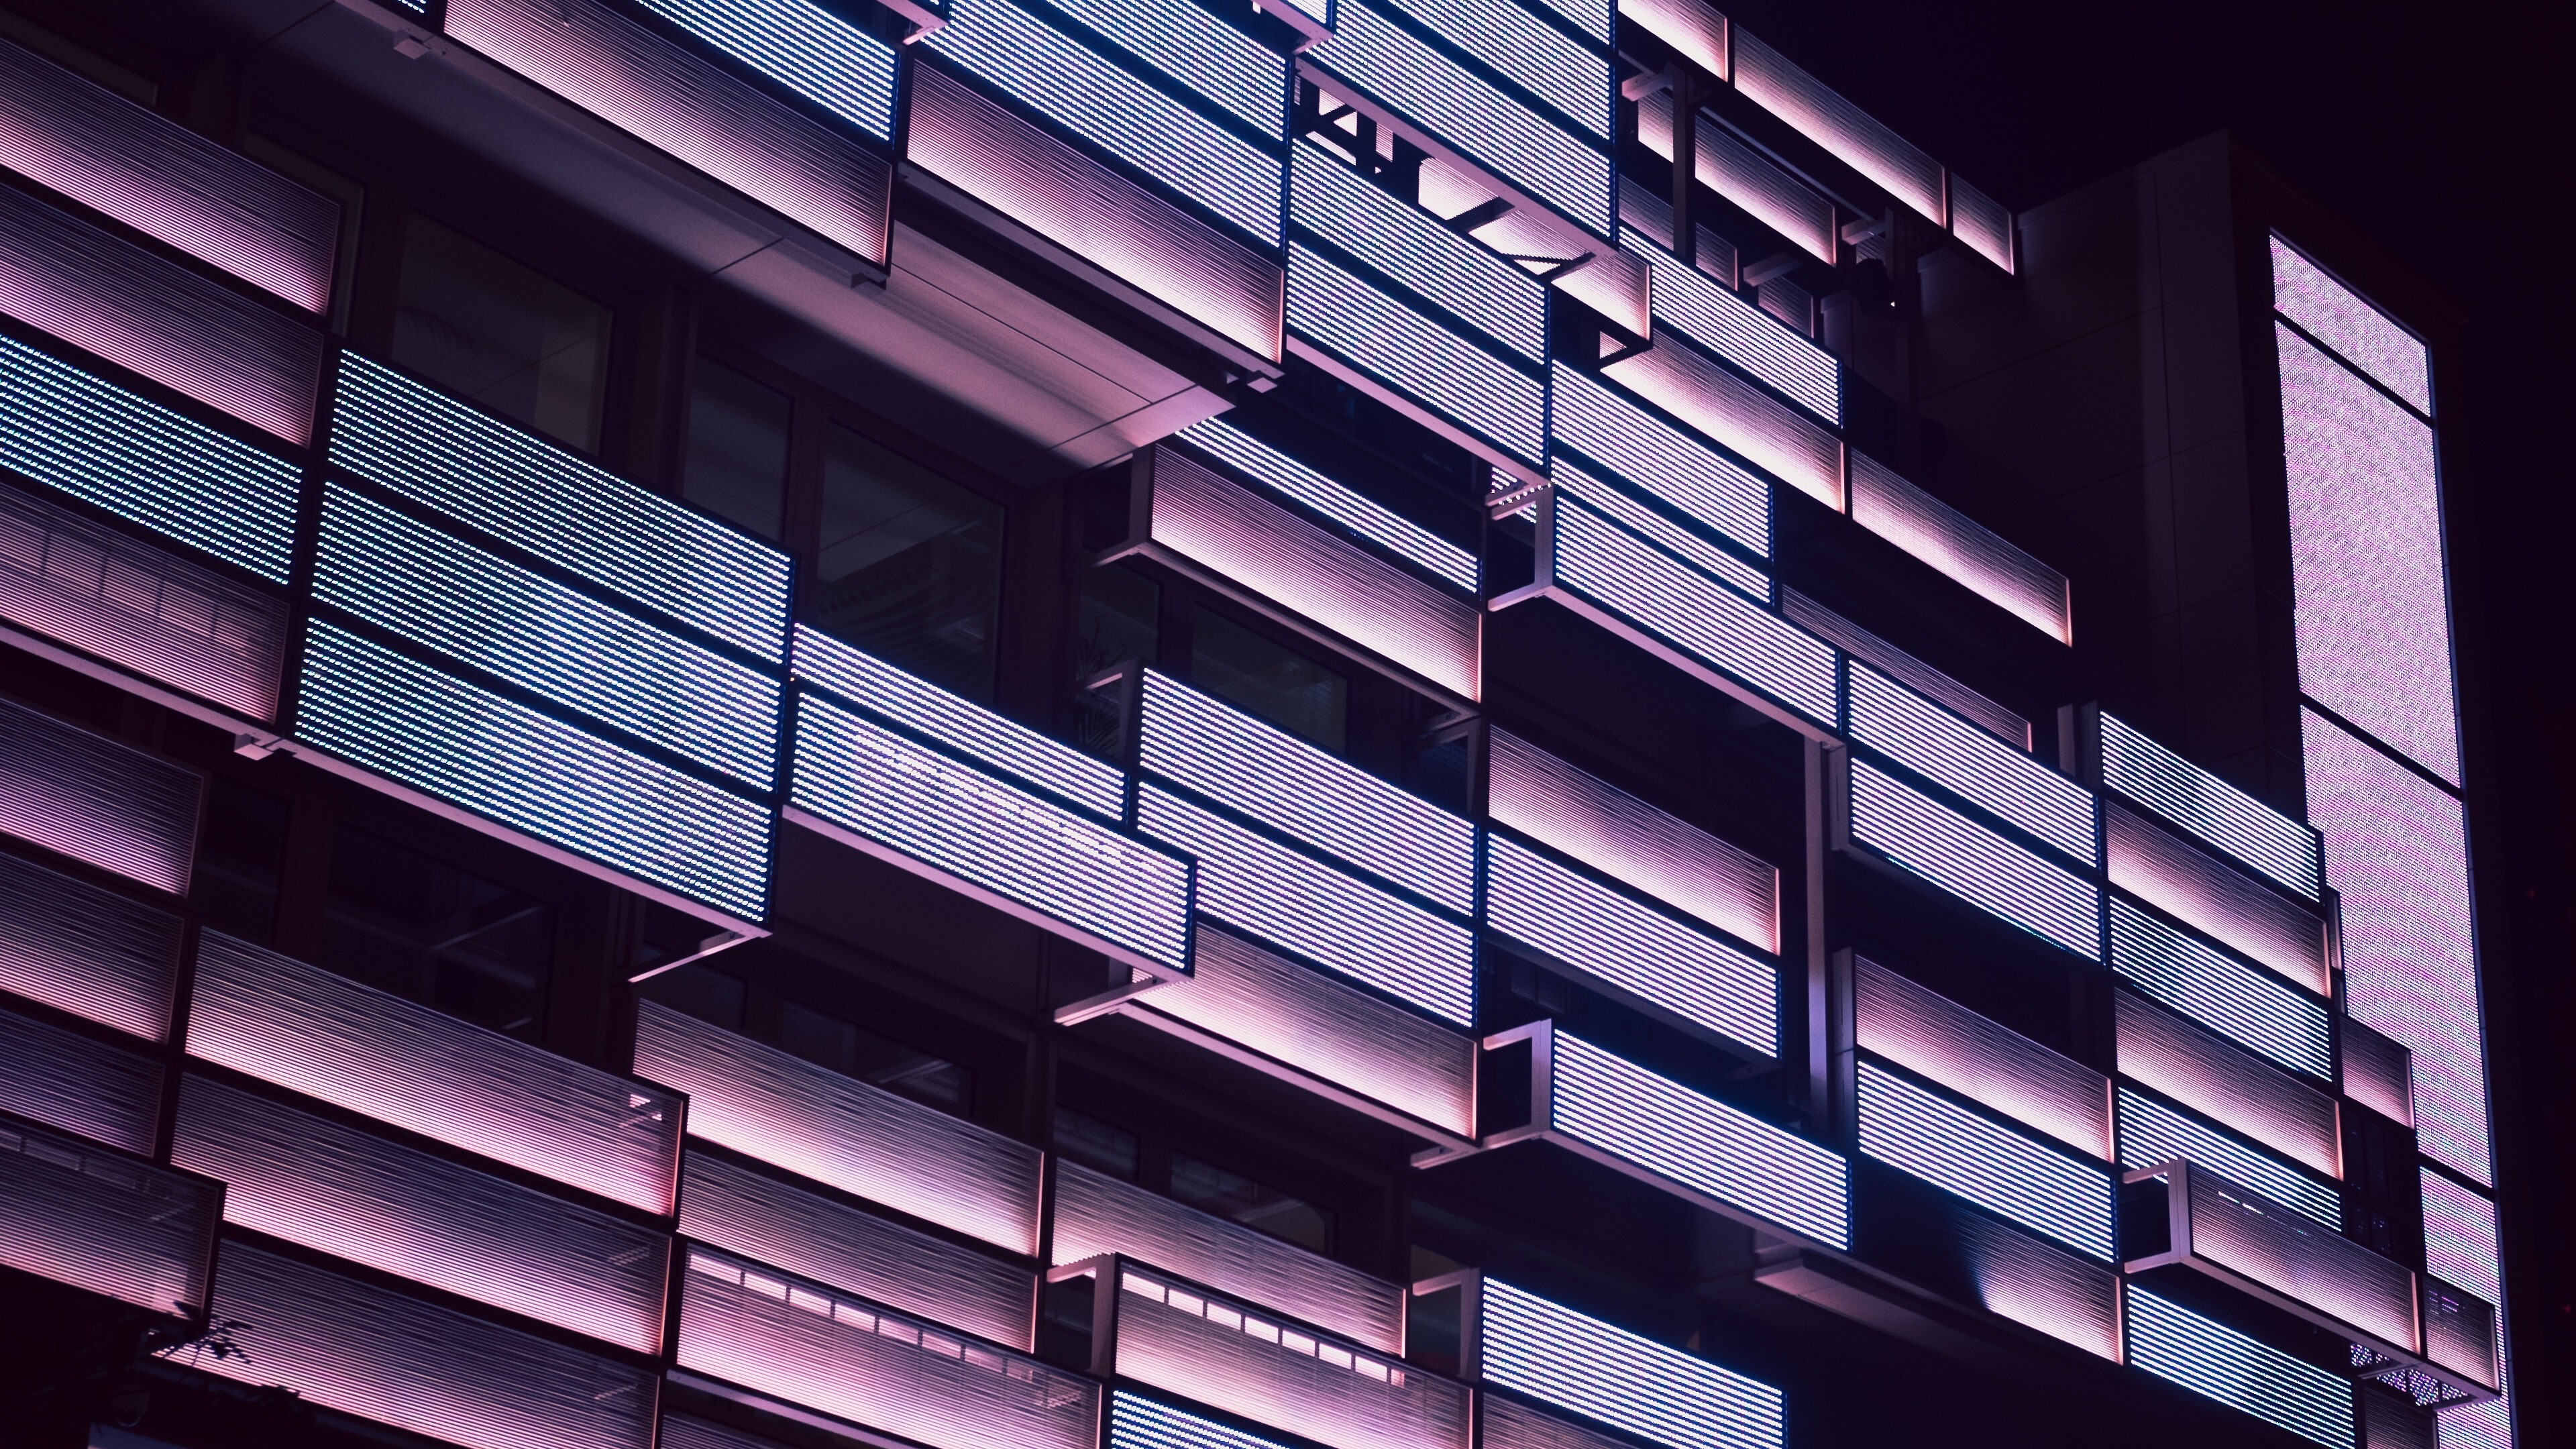 Building Balcony Abstract 4K Wallpaper | HD Wallpapers